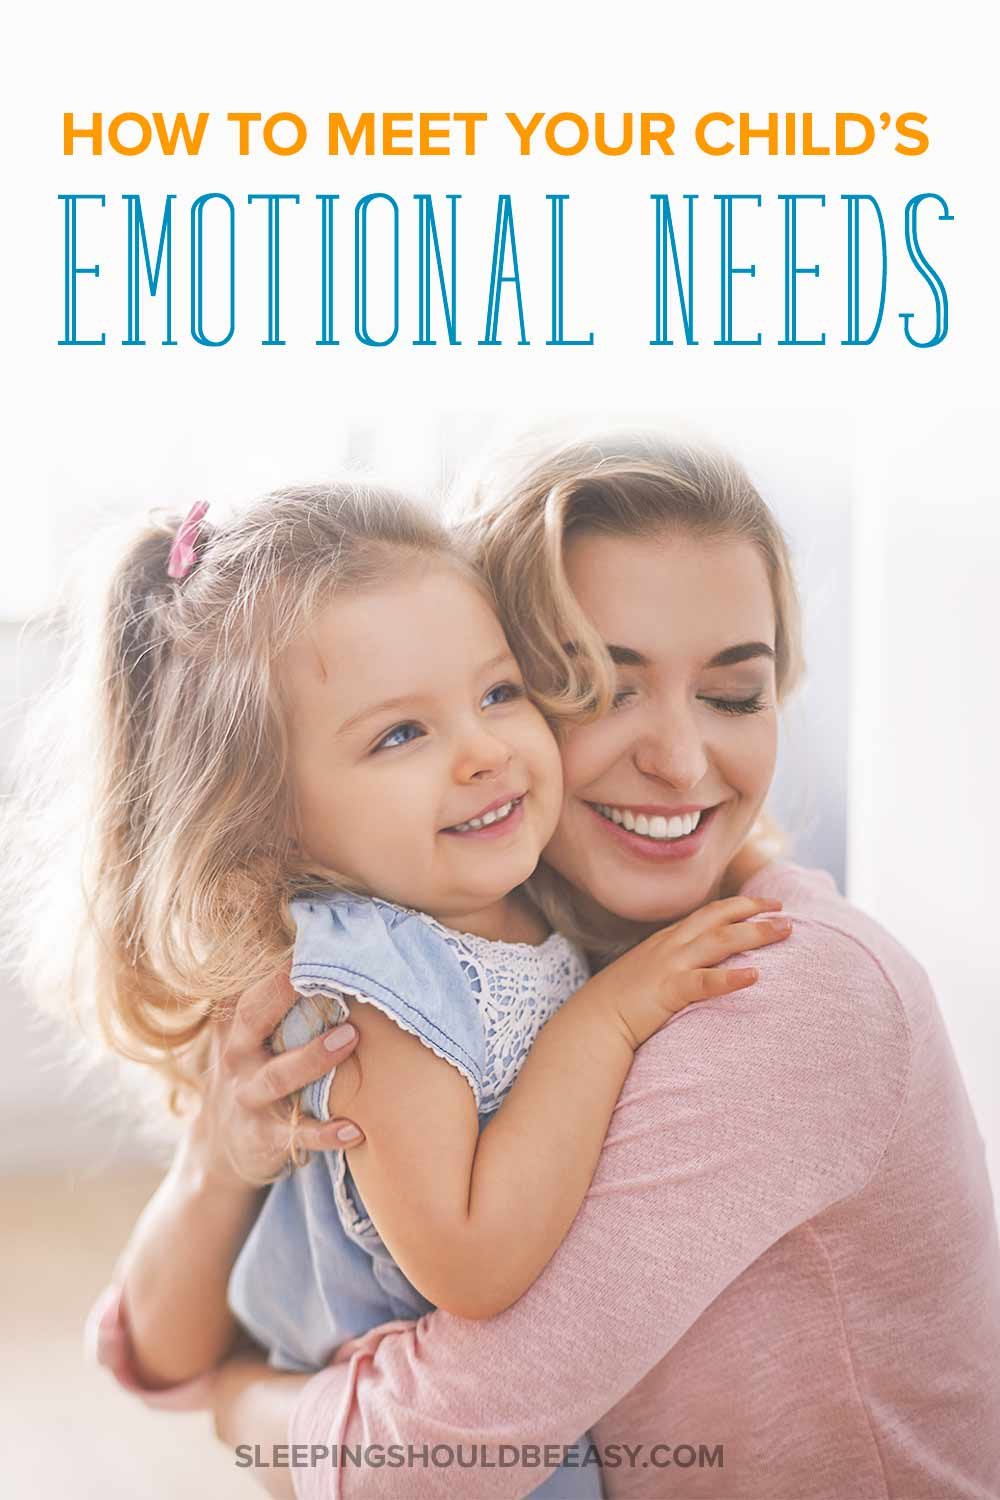 ways to meet childrens physical and emotional needs